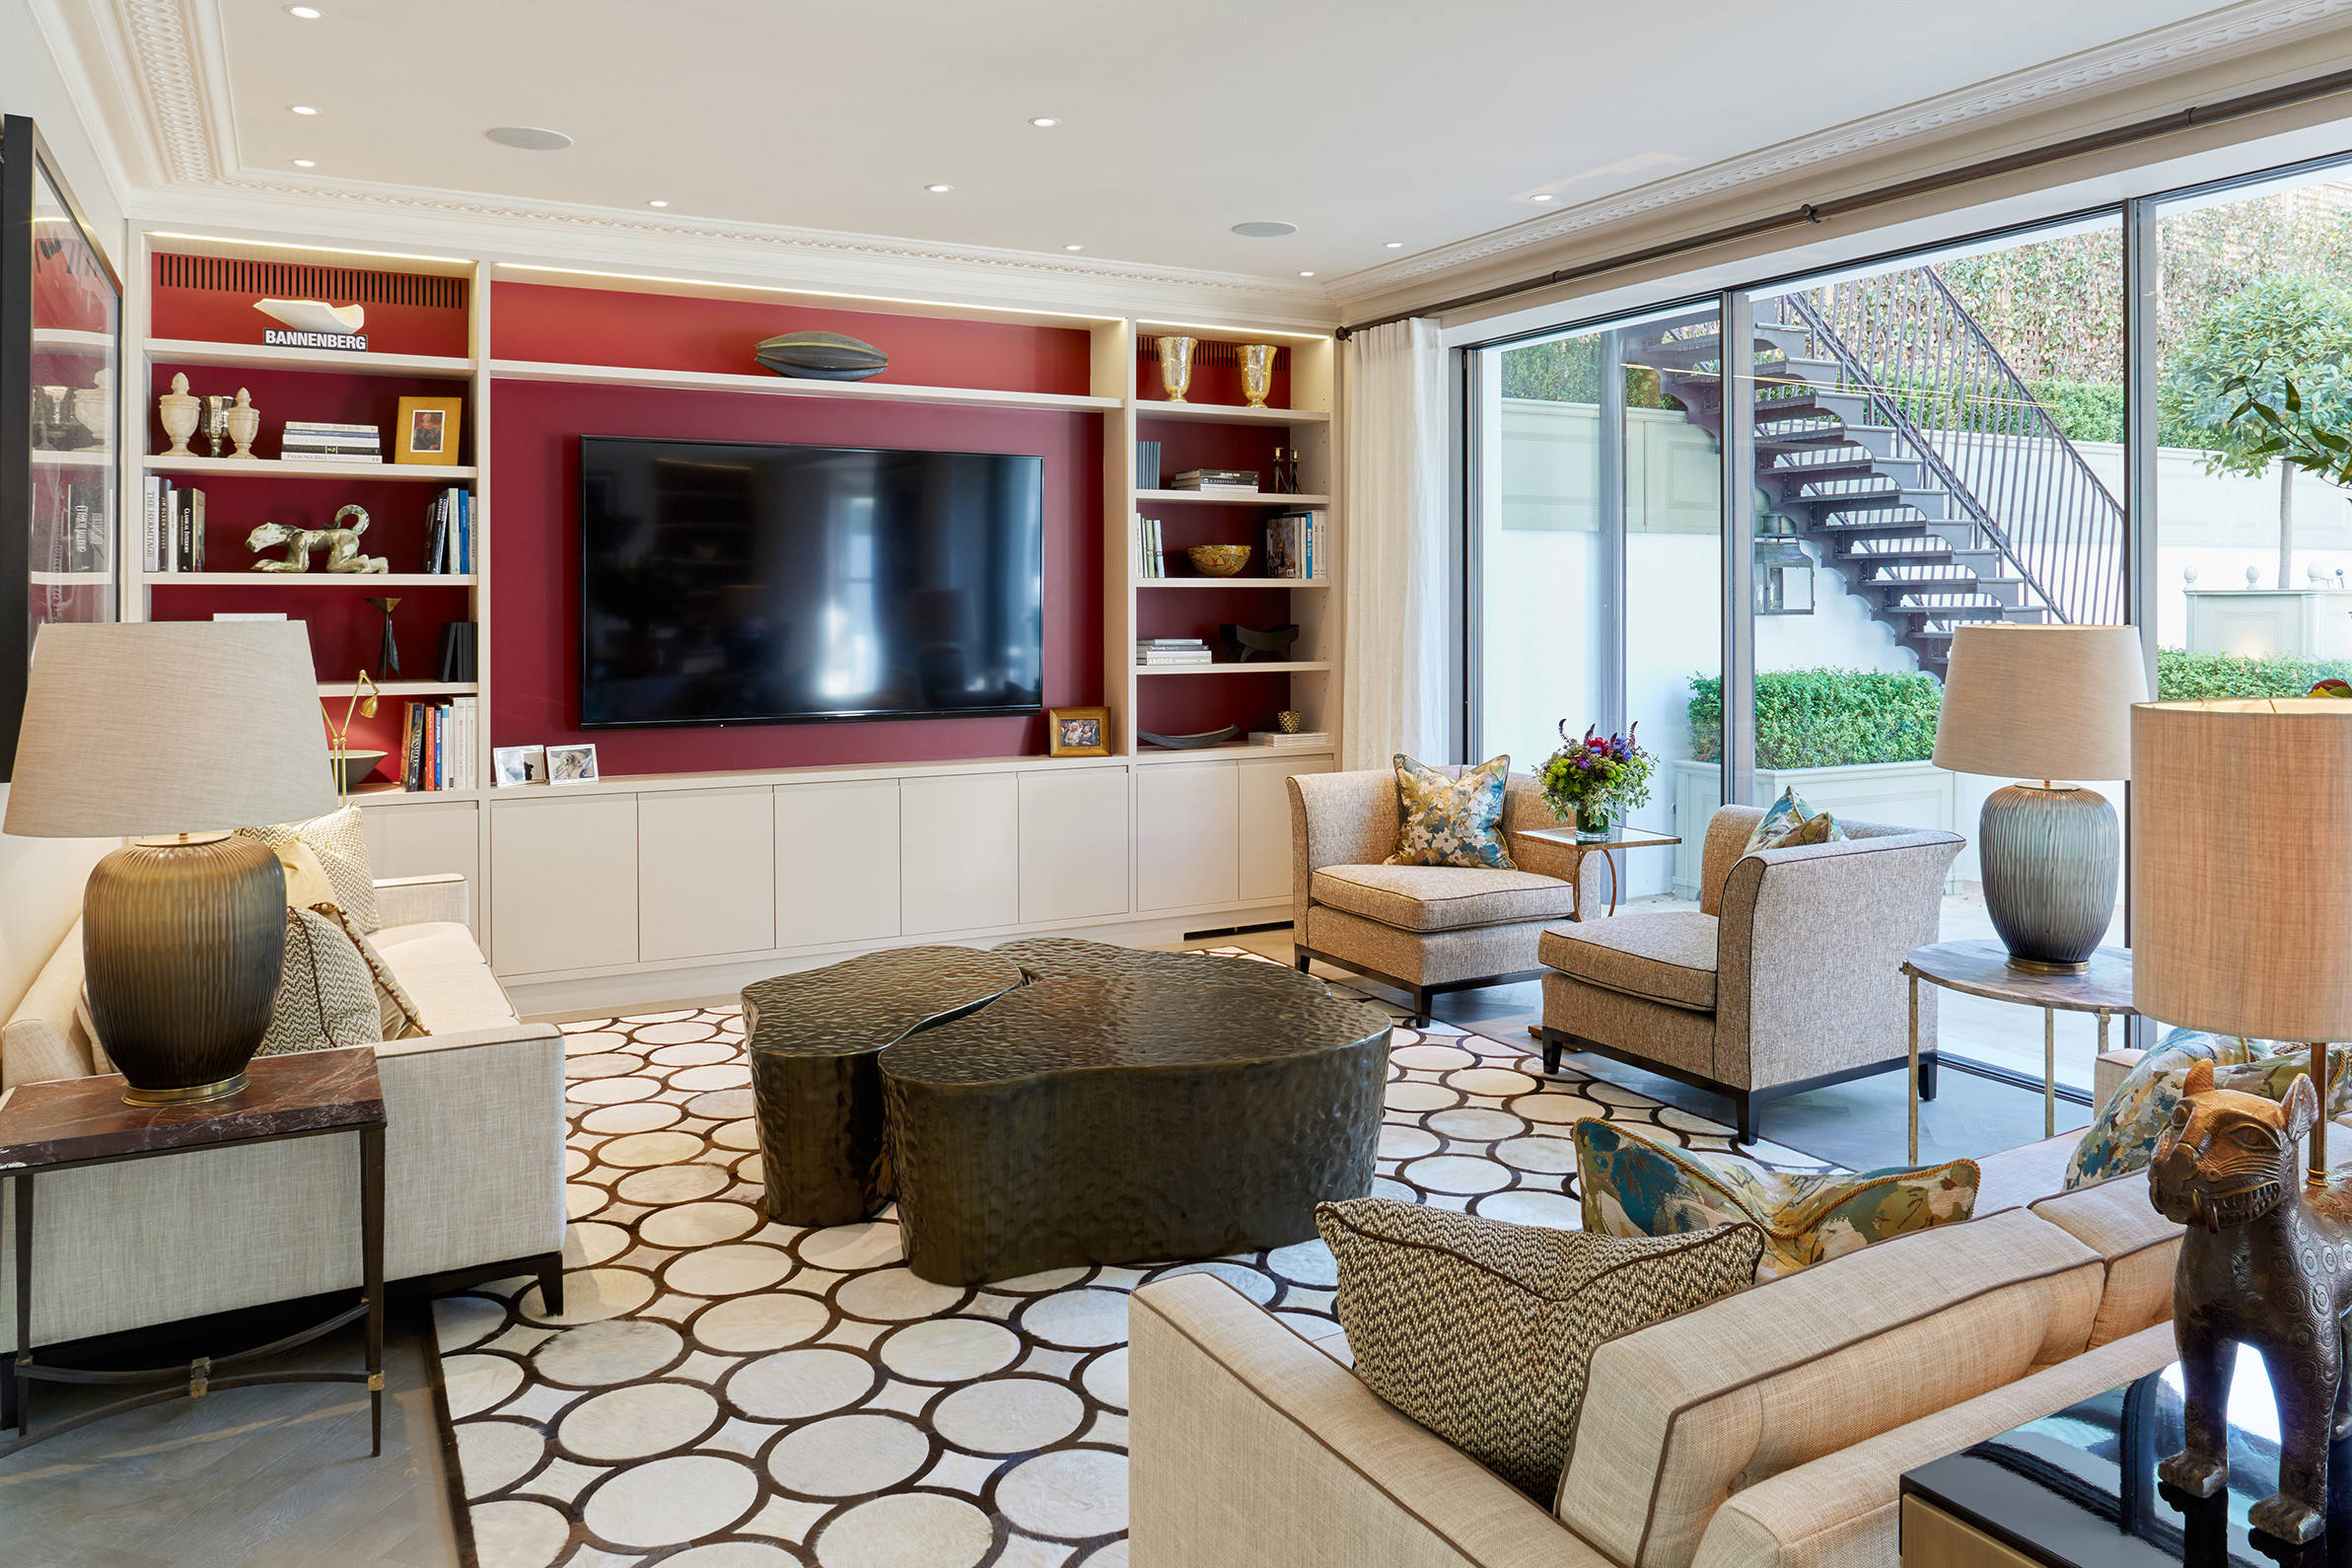 75 Beautiful Living Room With Red Walls Pictures Ideas January 2021 Houzz